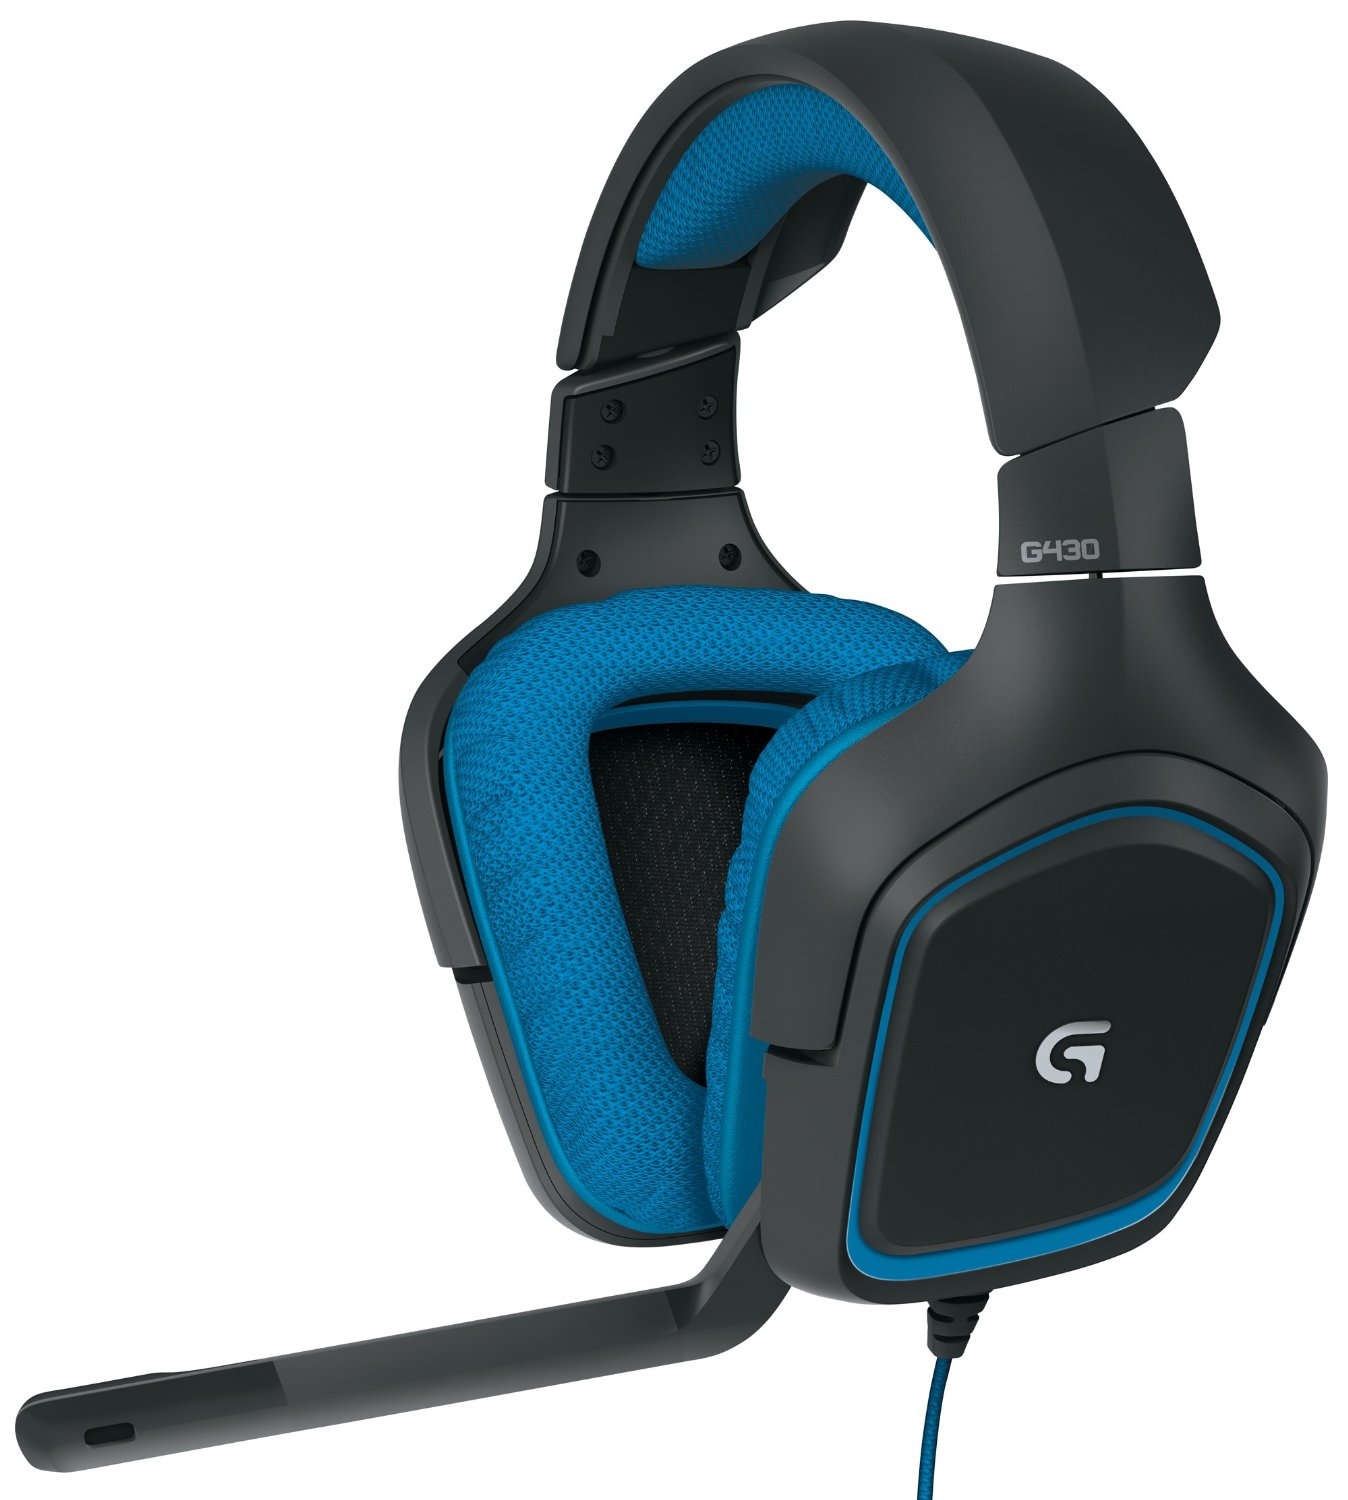 Logitech G430 Surround Sound Gaming Headset with Dolby 7.1 Technology колонки definitive technology sound cylinder